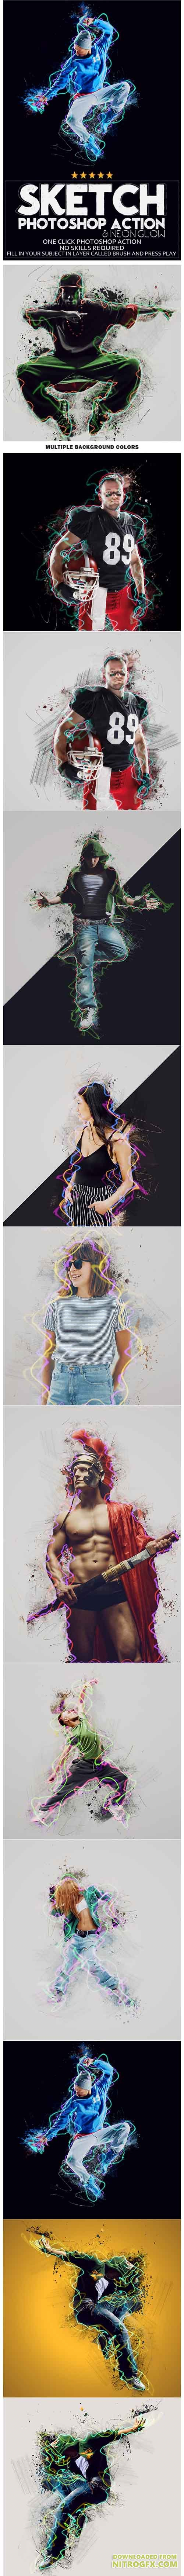 GraphicRiver - Sketch Photoshop Action 20652201